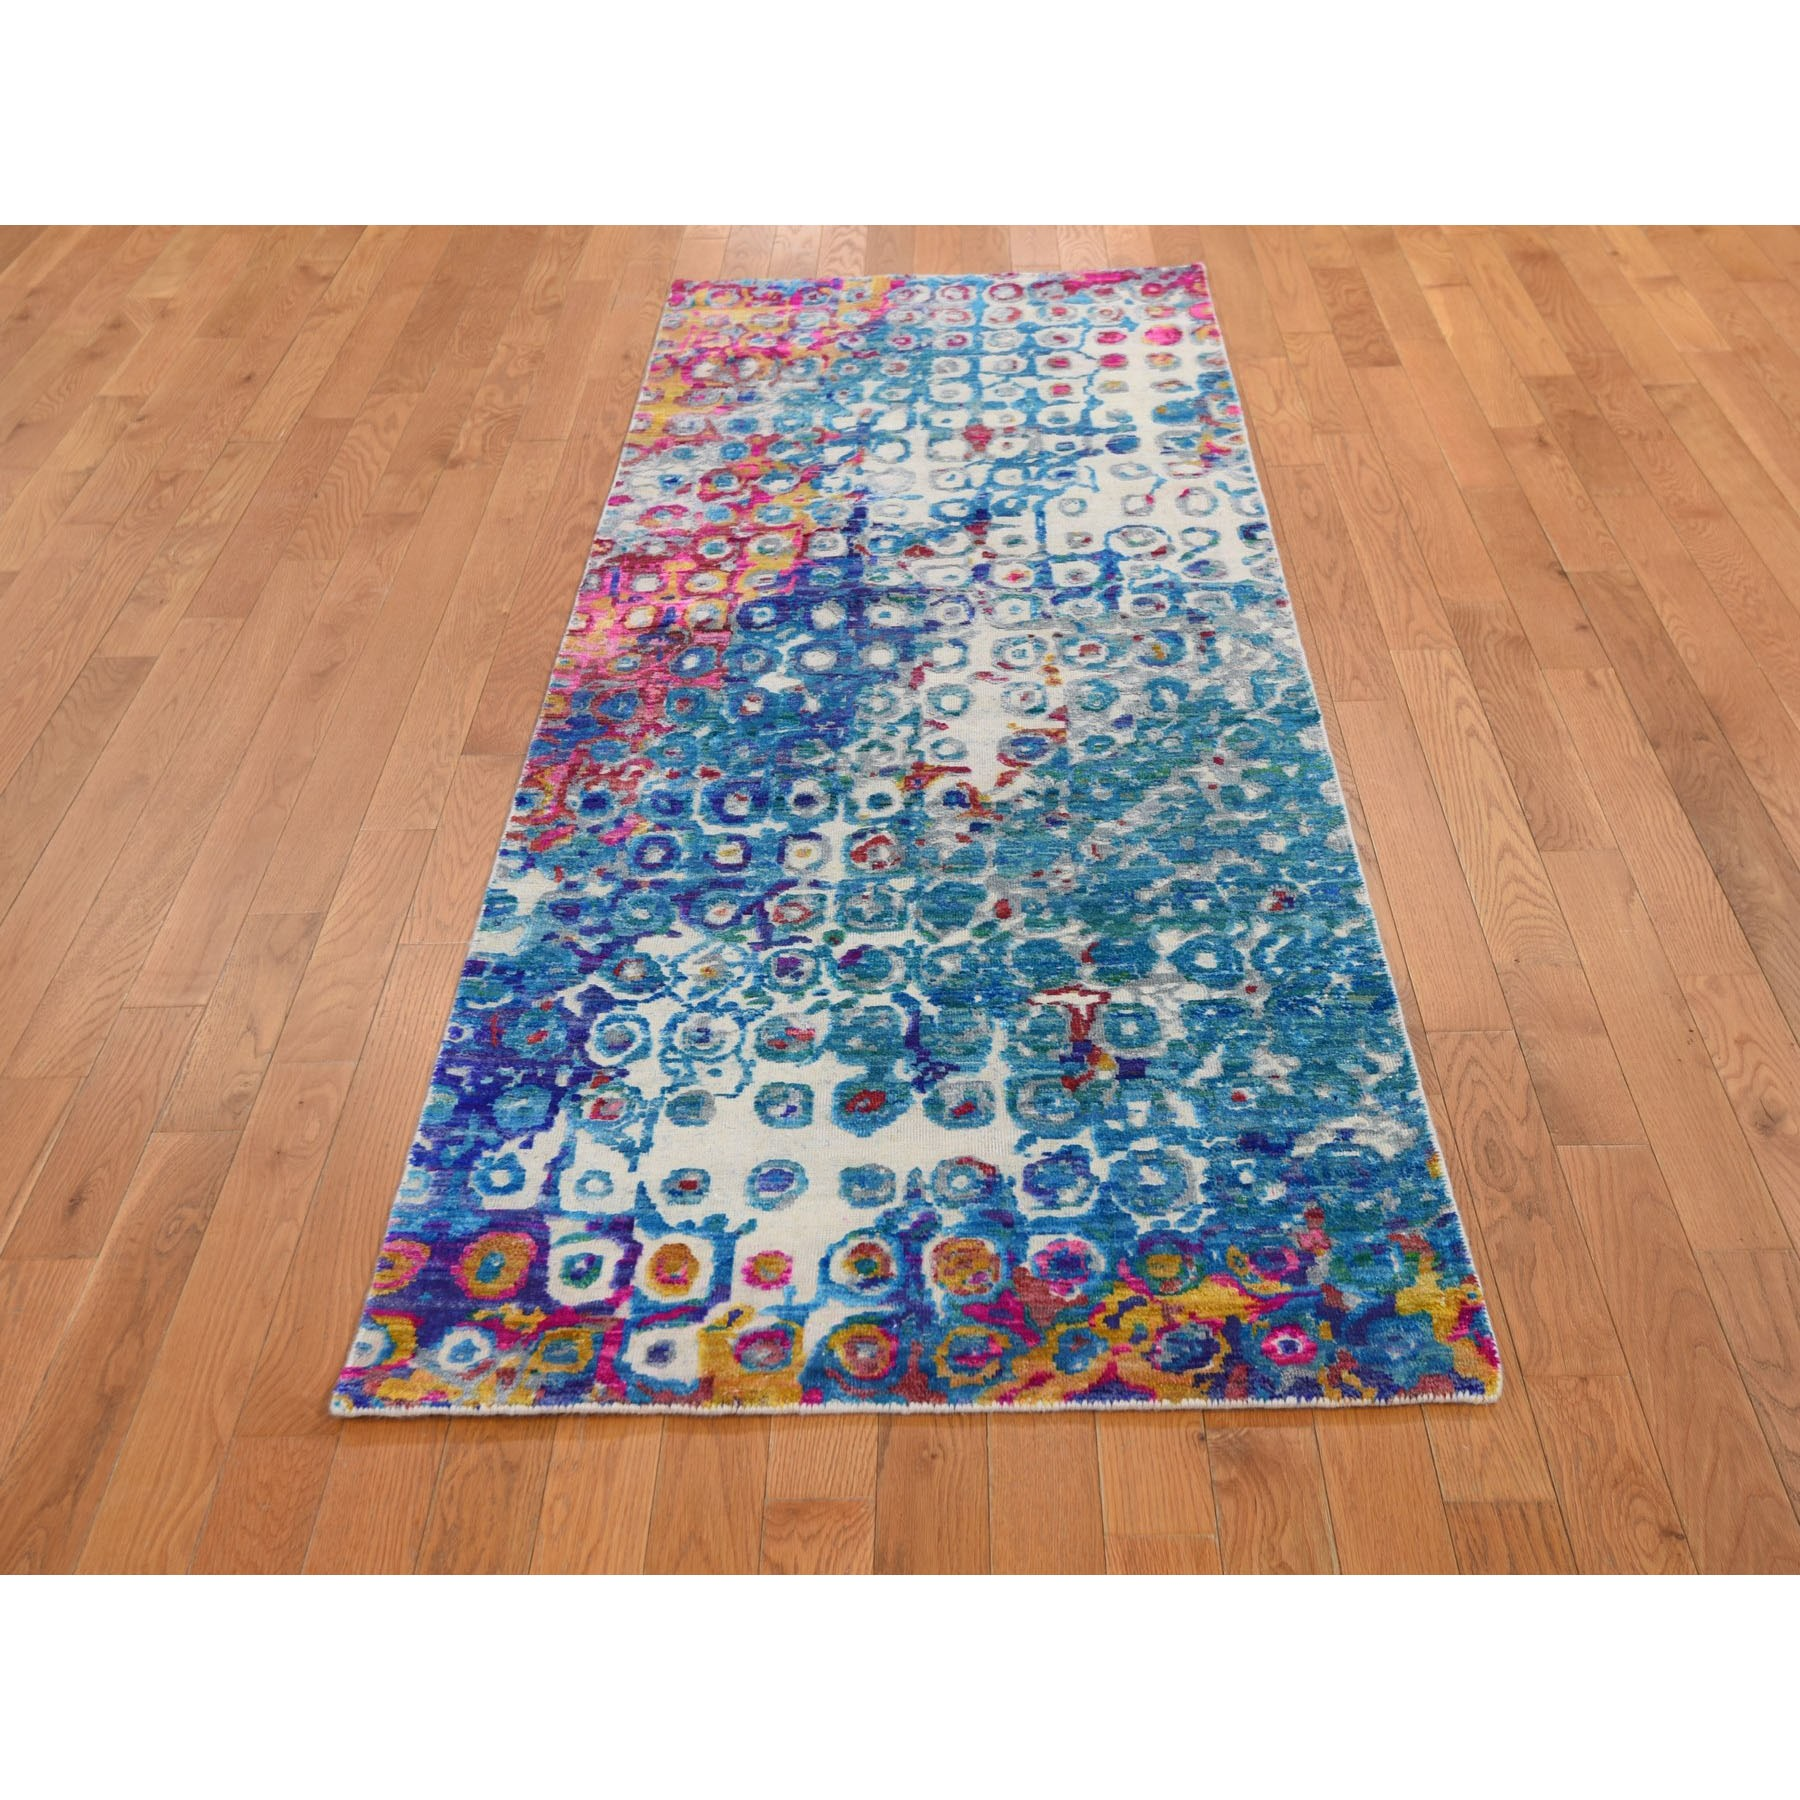 "3'x8'2"" THE PEACOCK, Sari Silk Colorful Hand Knotted Runner Oriental Rug"